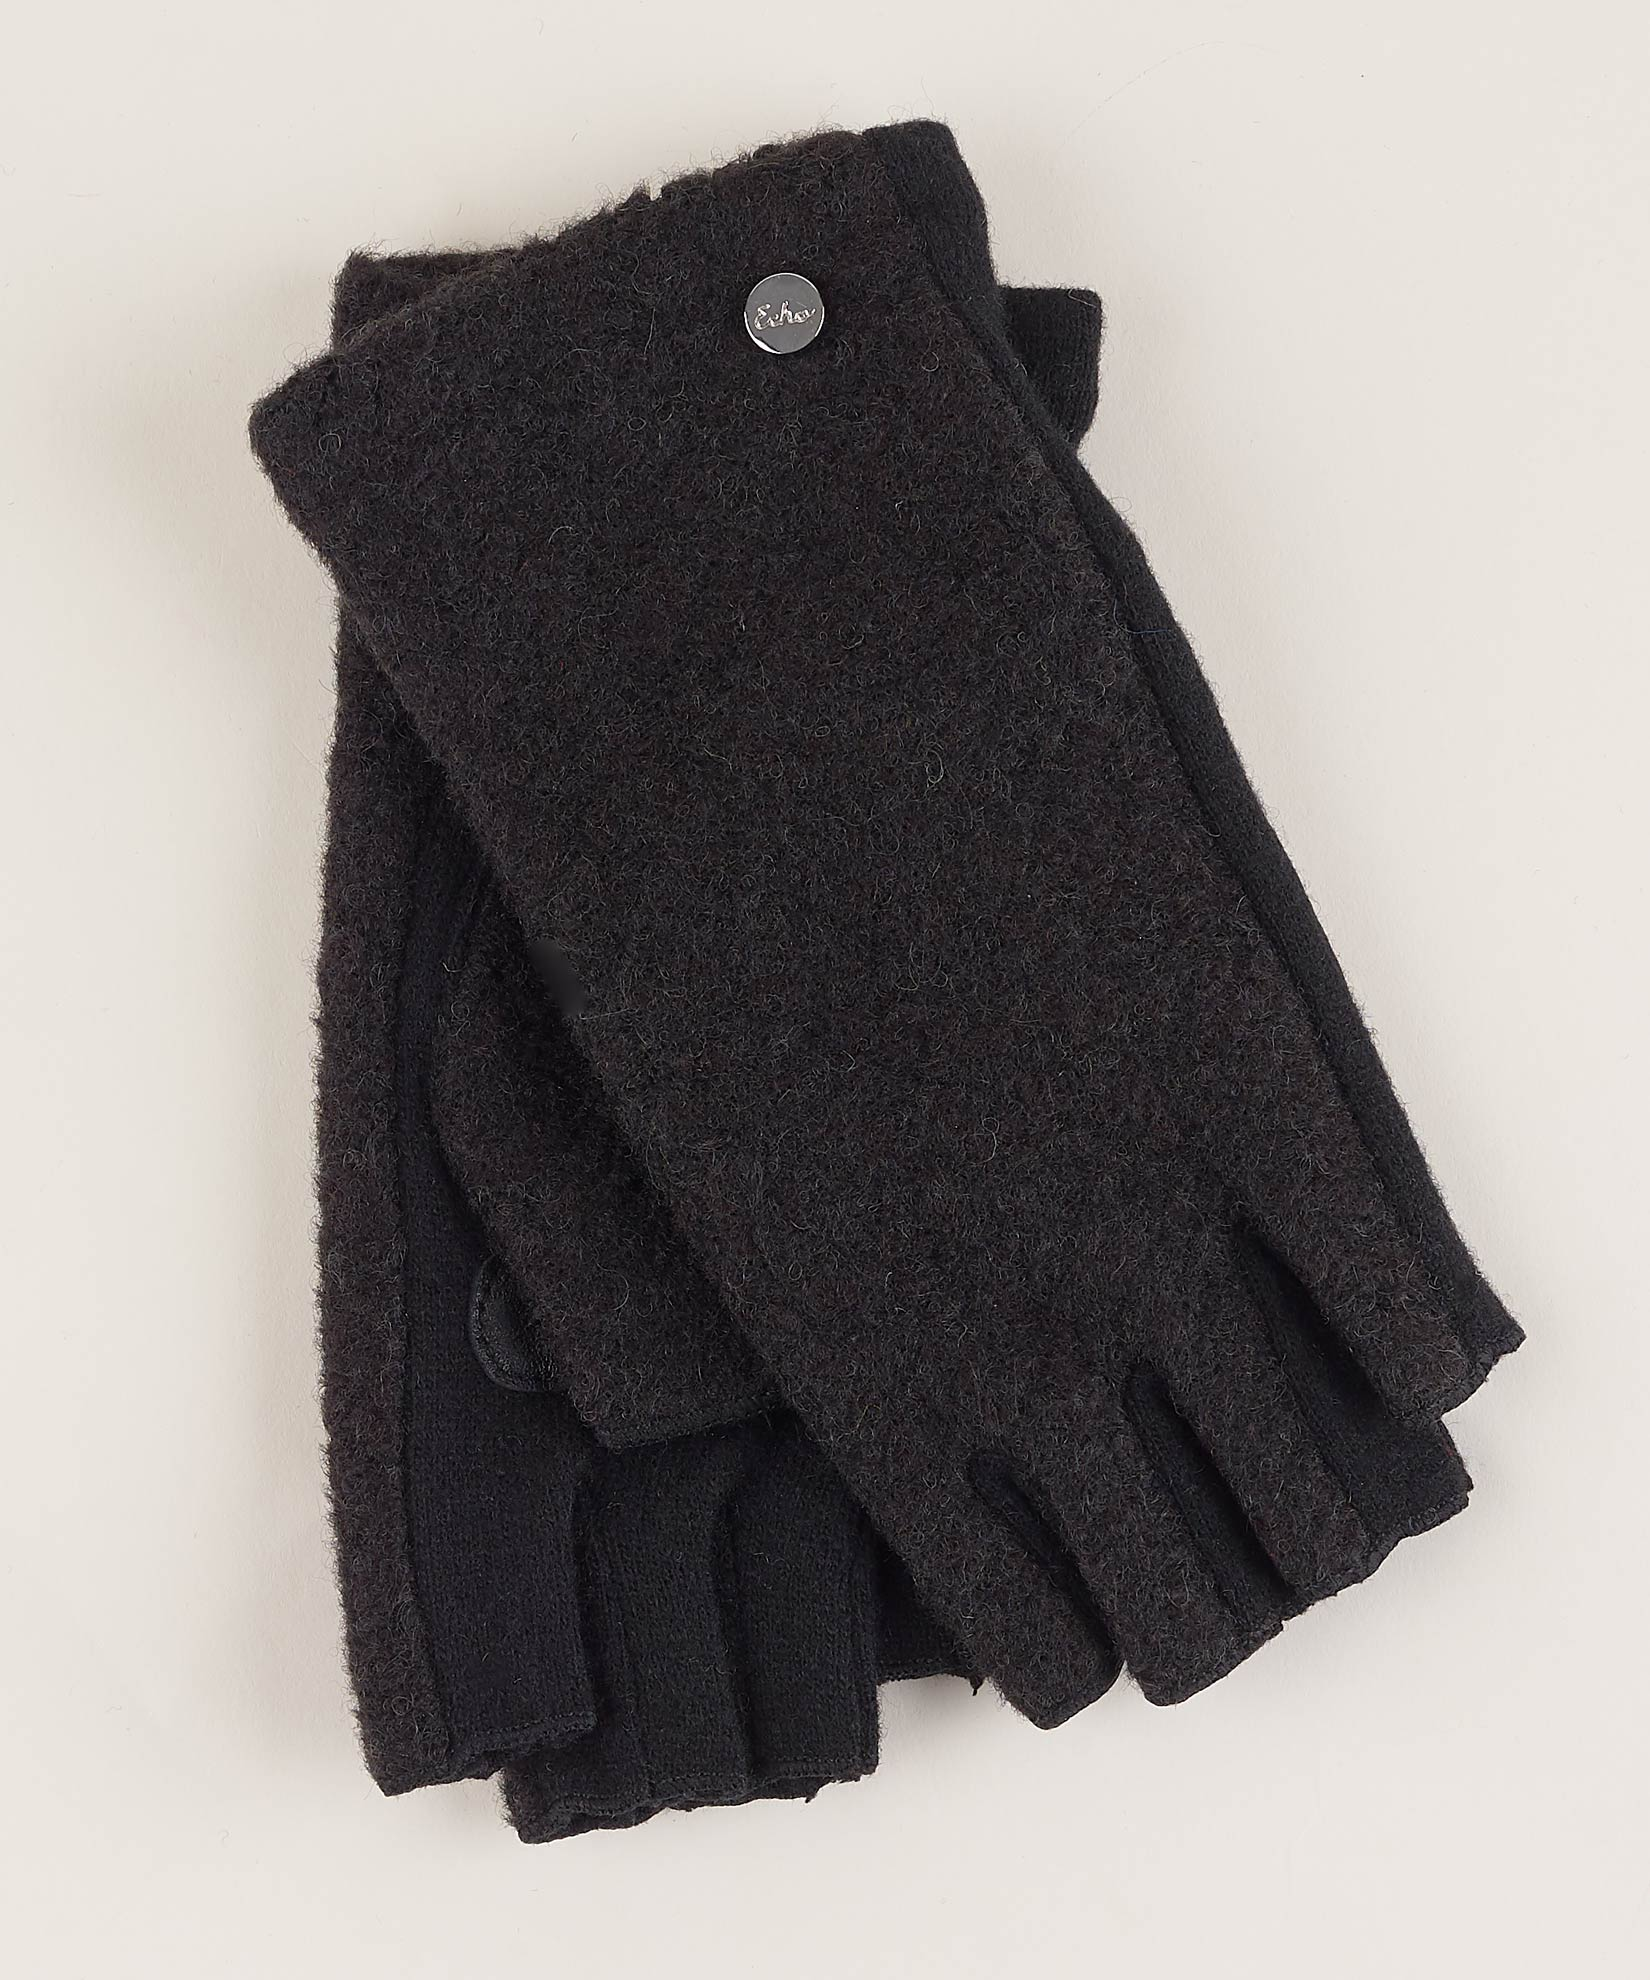 Black - Boucle Fingerless Glove